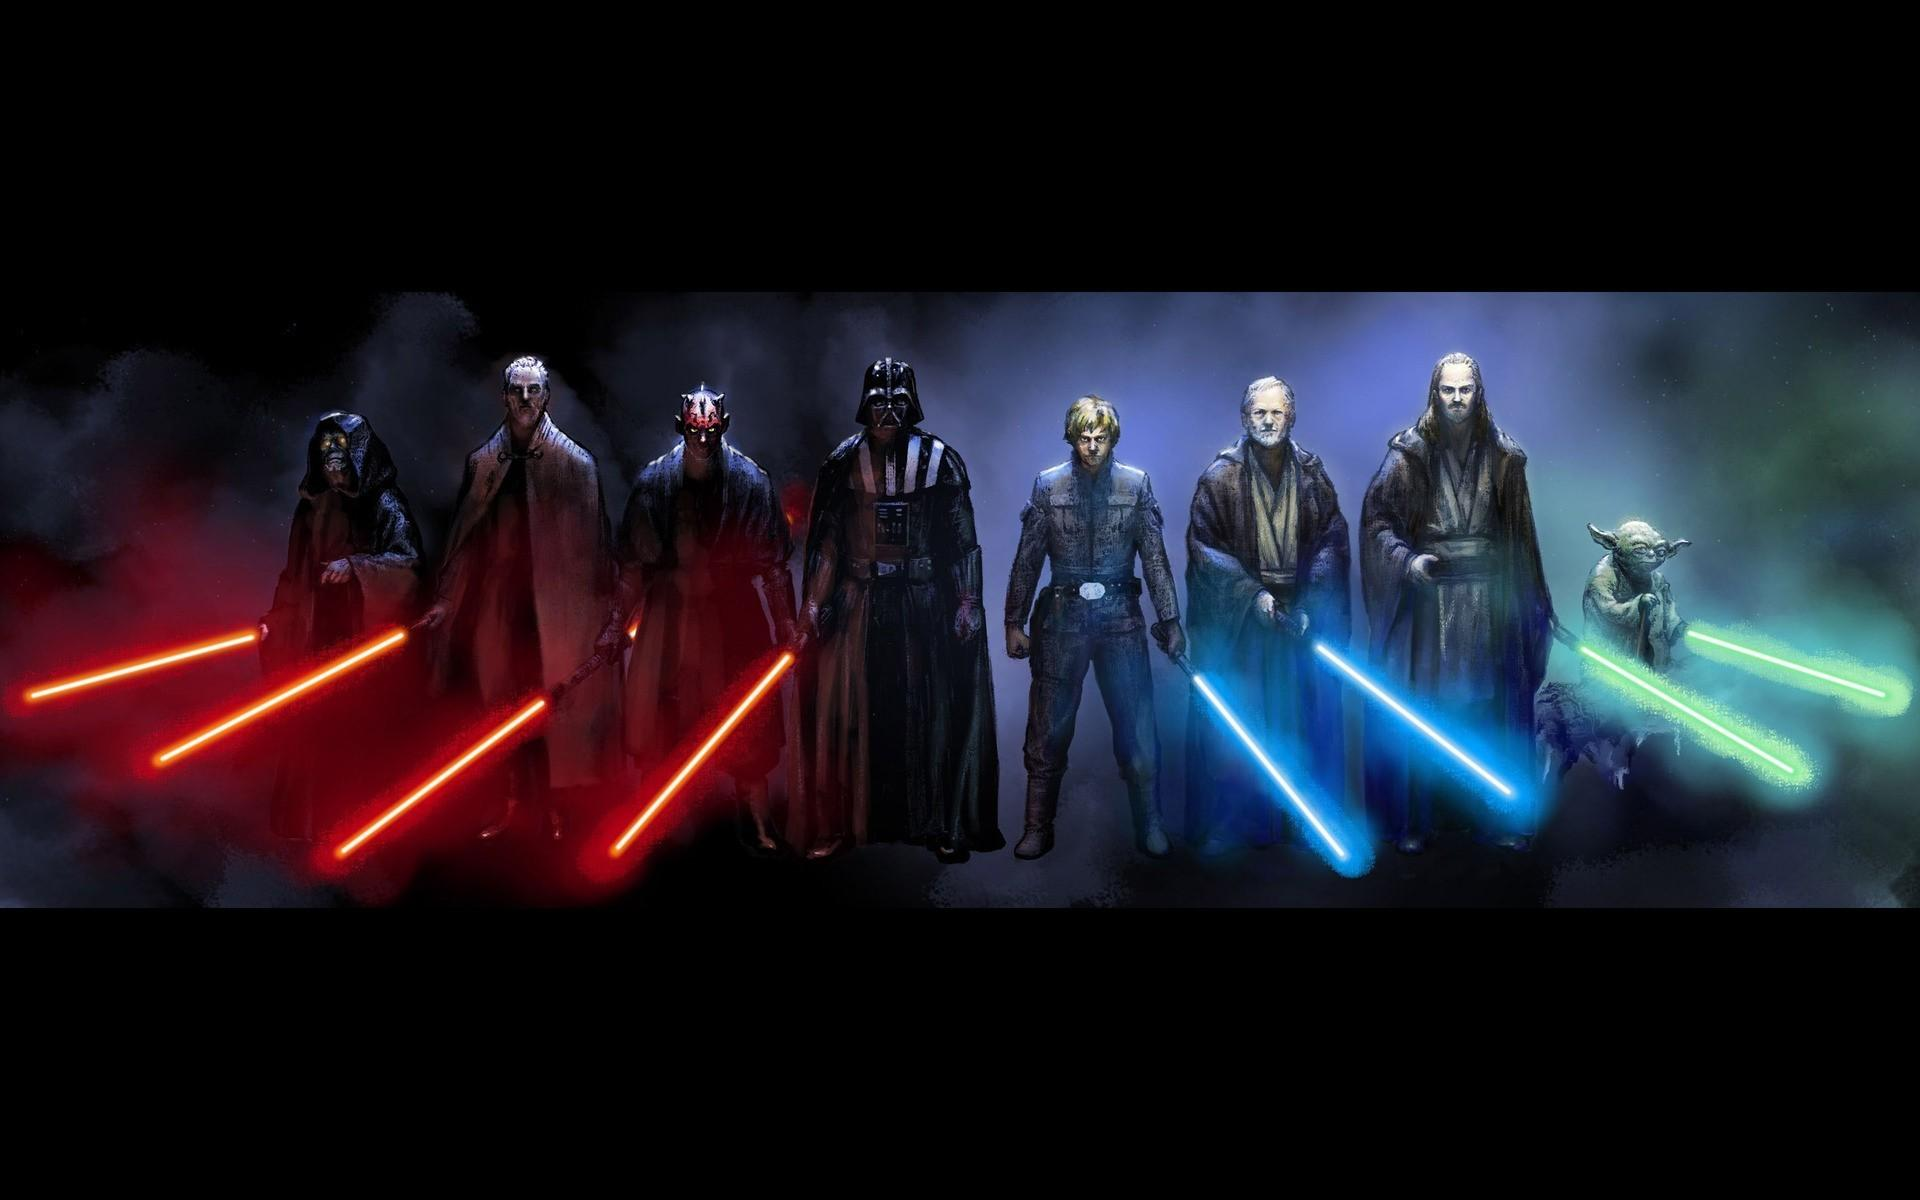 Darth Vader And Jedi Queen Wallpapers Wallpaper Cave